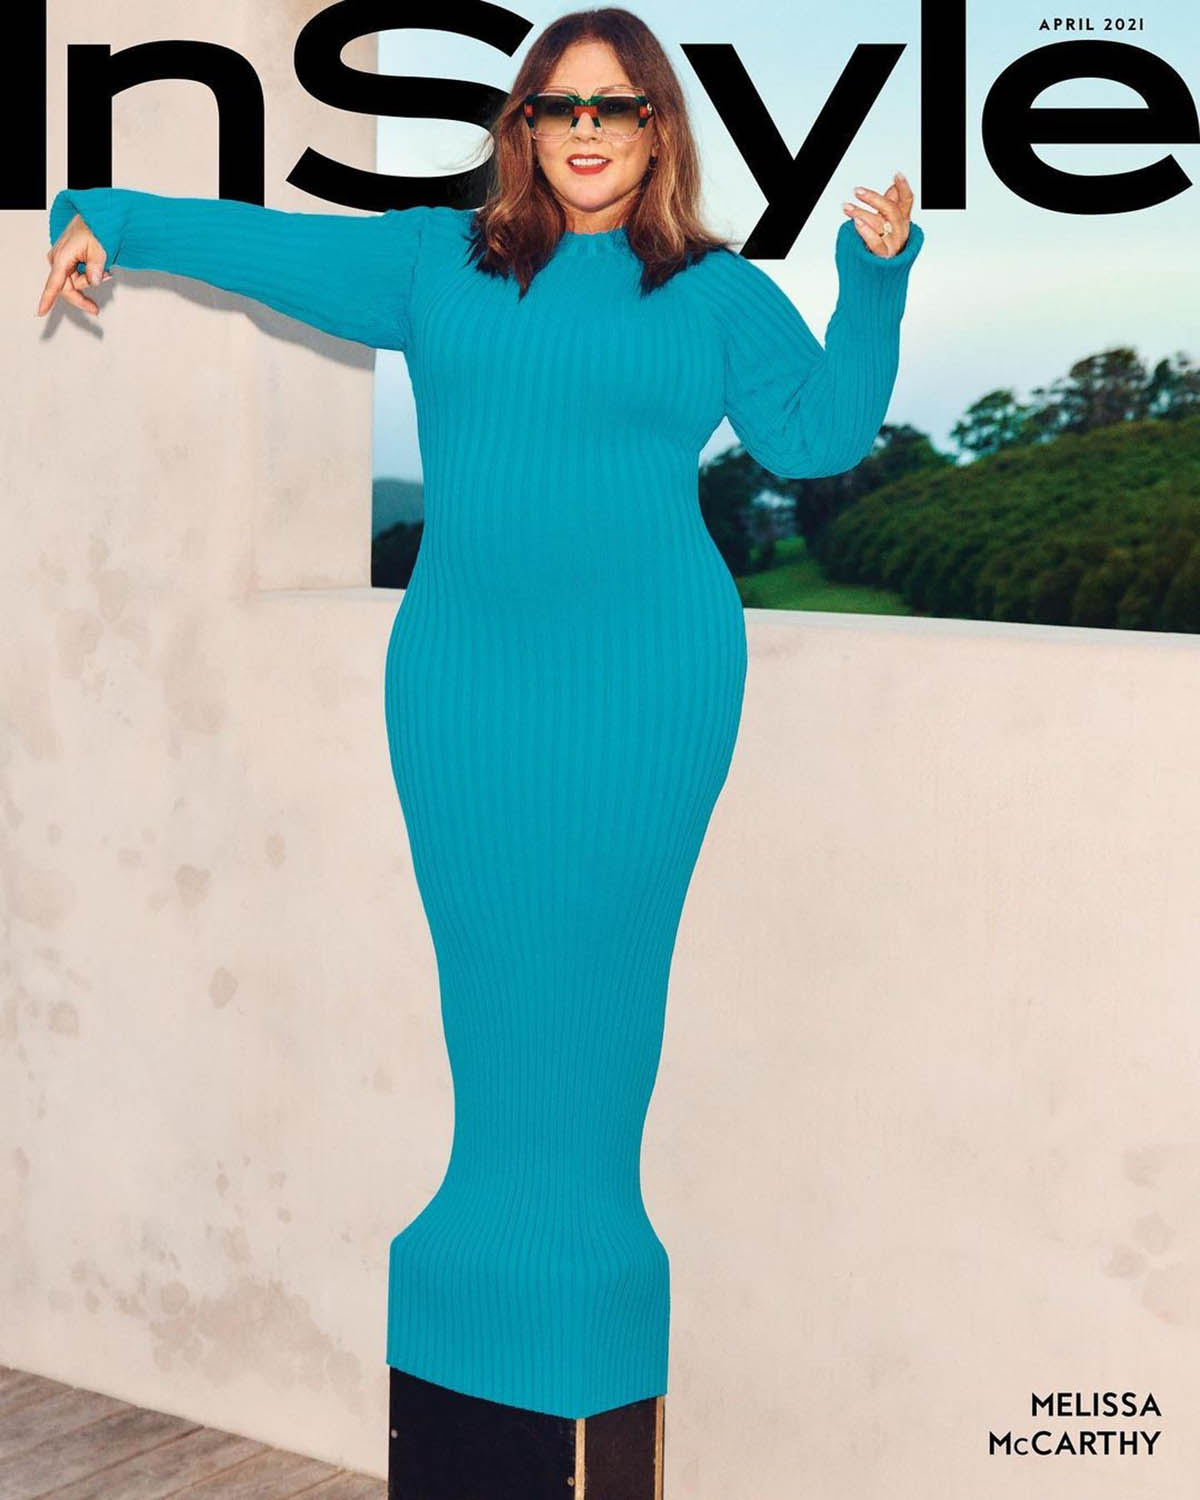 Melissa McCarthy covers InStyle US April 2021 by Charles Dennington